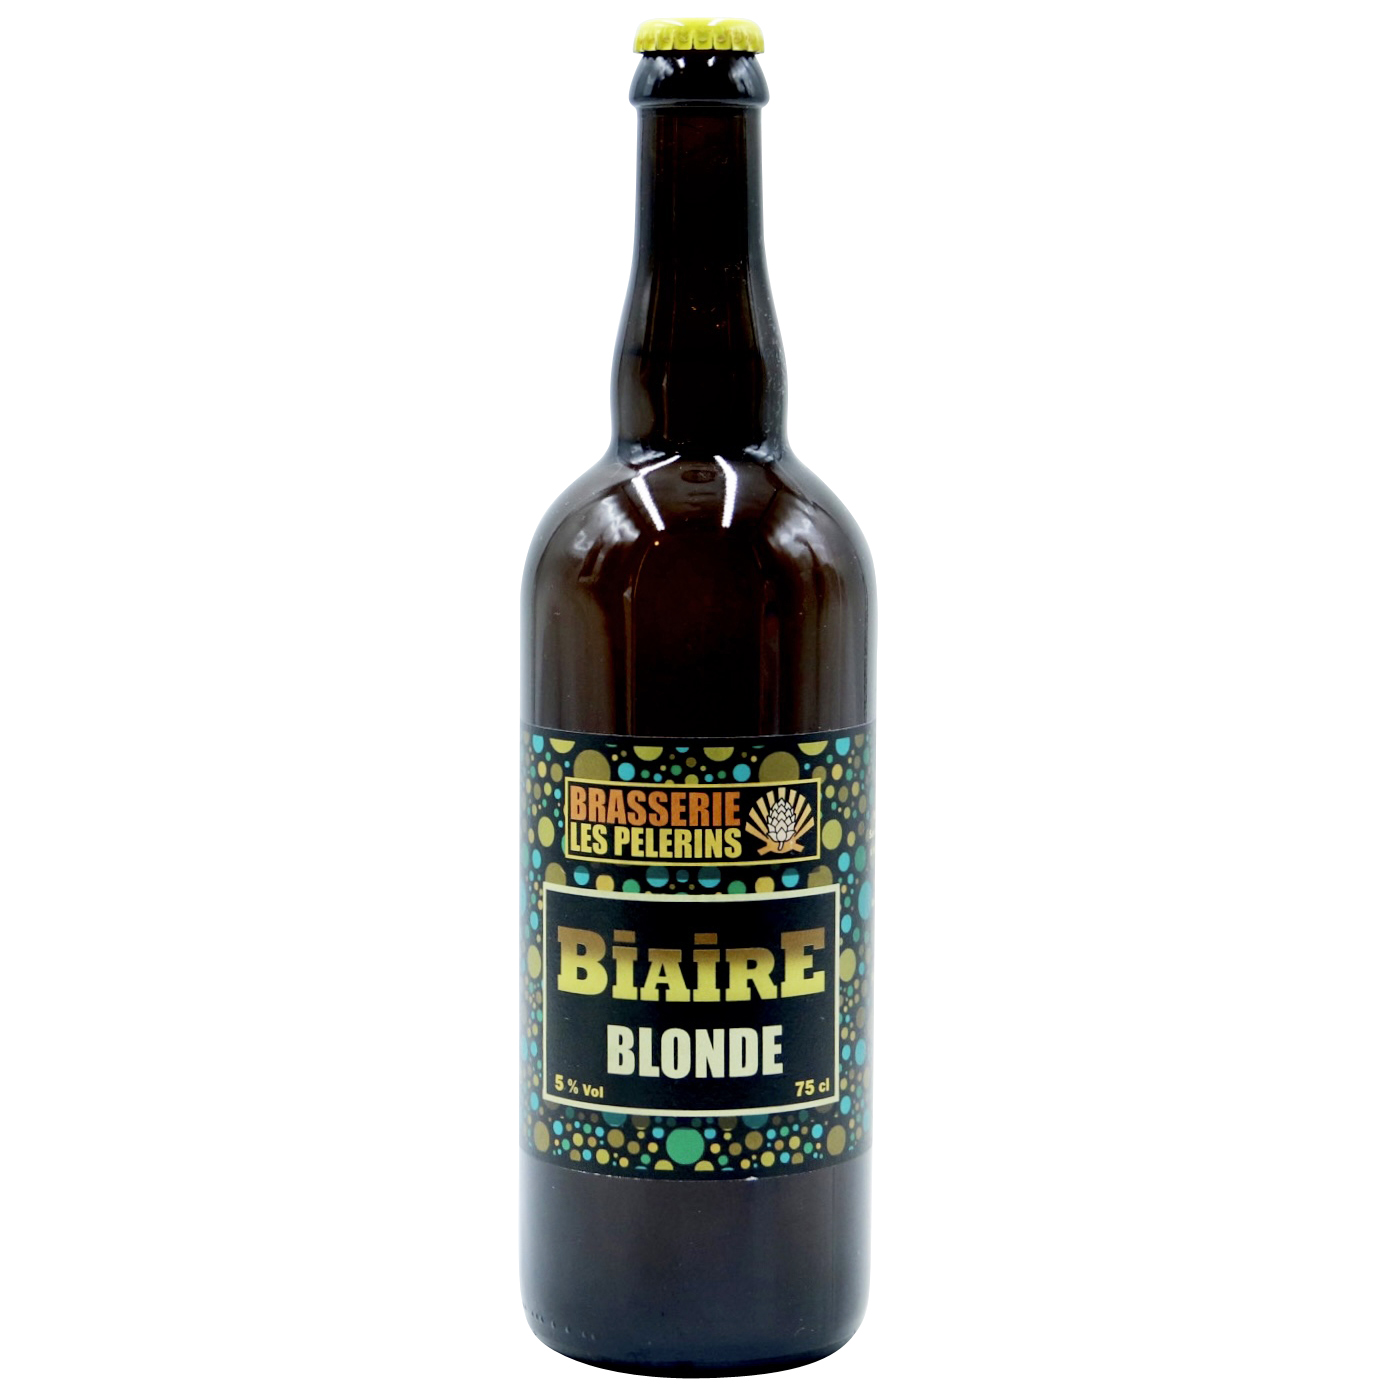 BIAIRE BLONDE 75CL